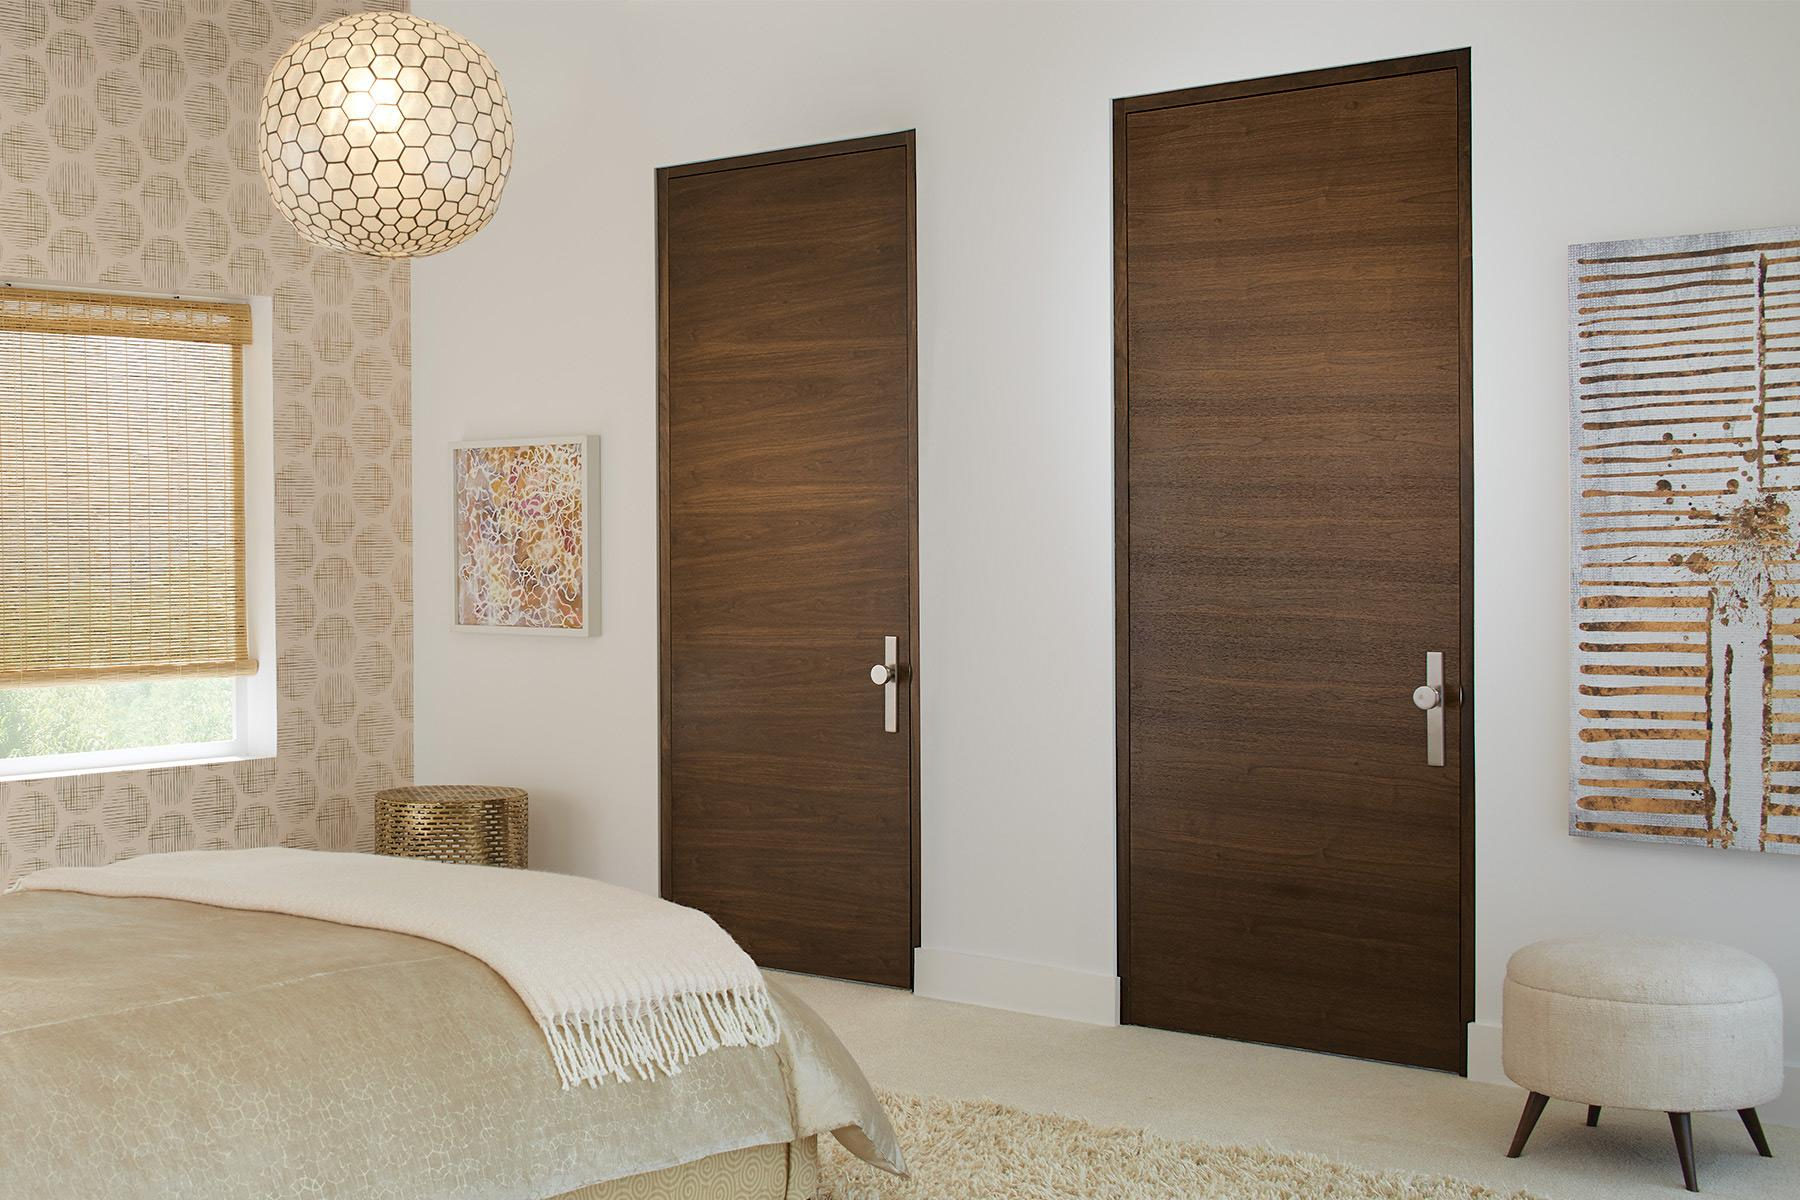 Bedroom featuring TMF1000 flush doors in walnut with Cappuccino stain